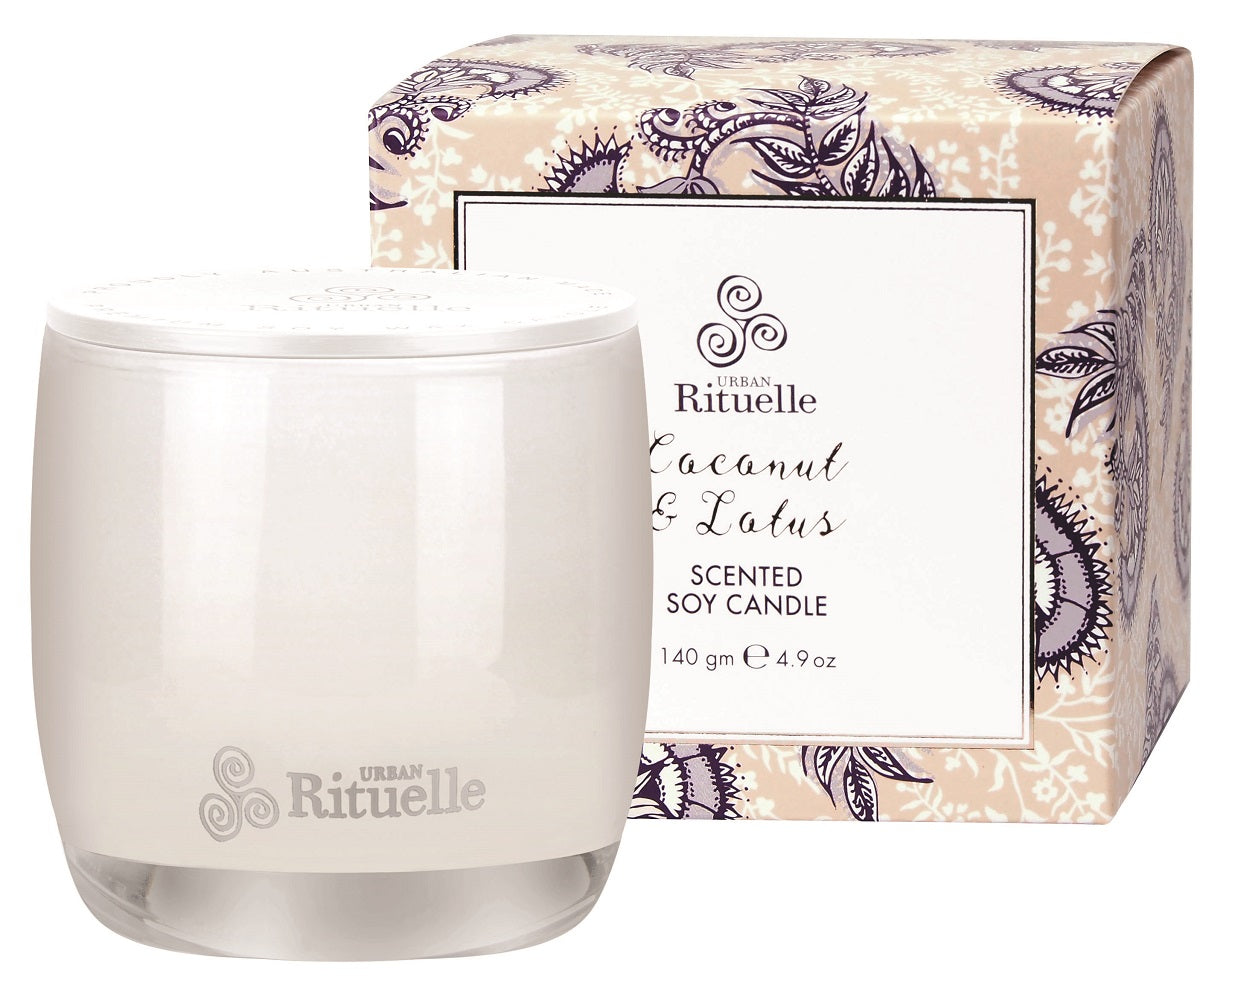 S.S COCONUT & LOTUS 140GM CANDLE